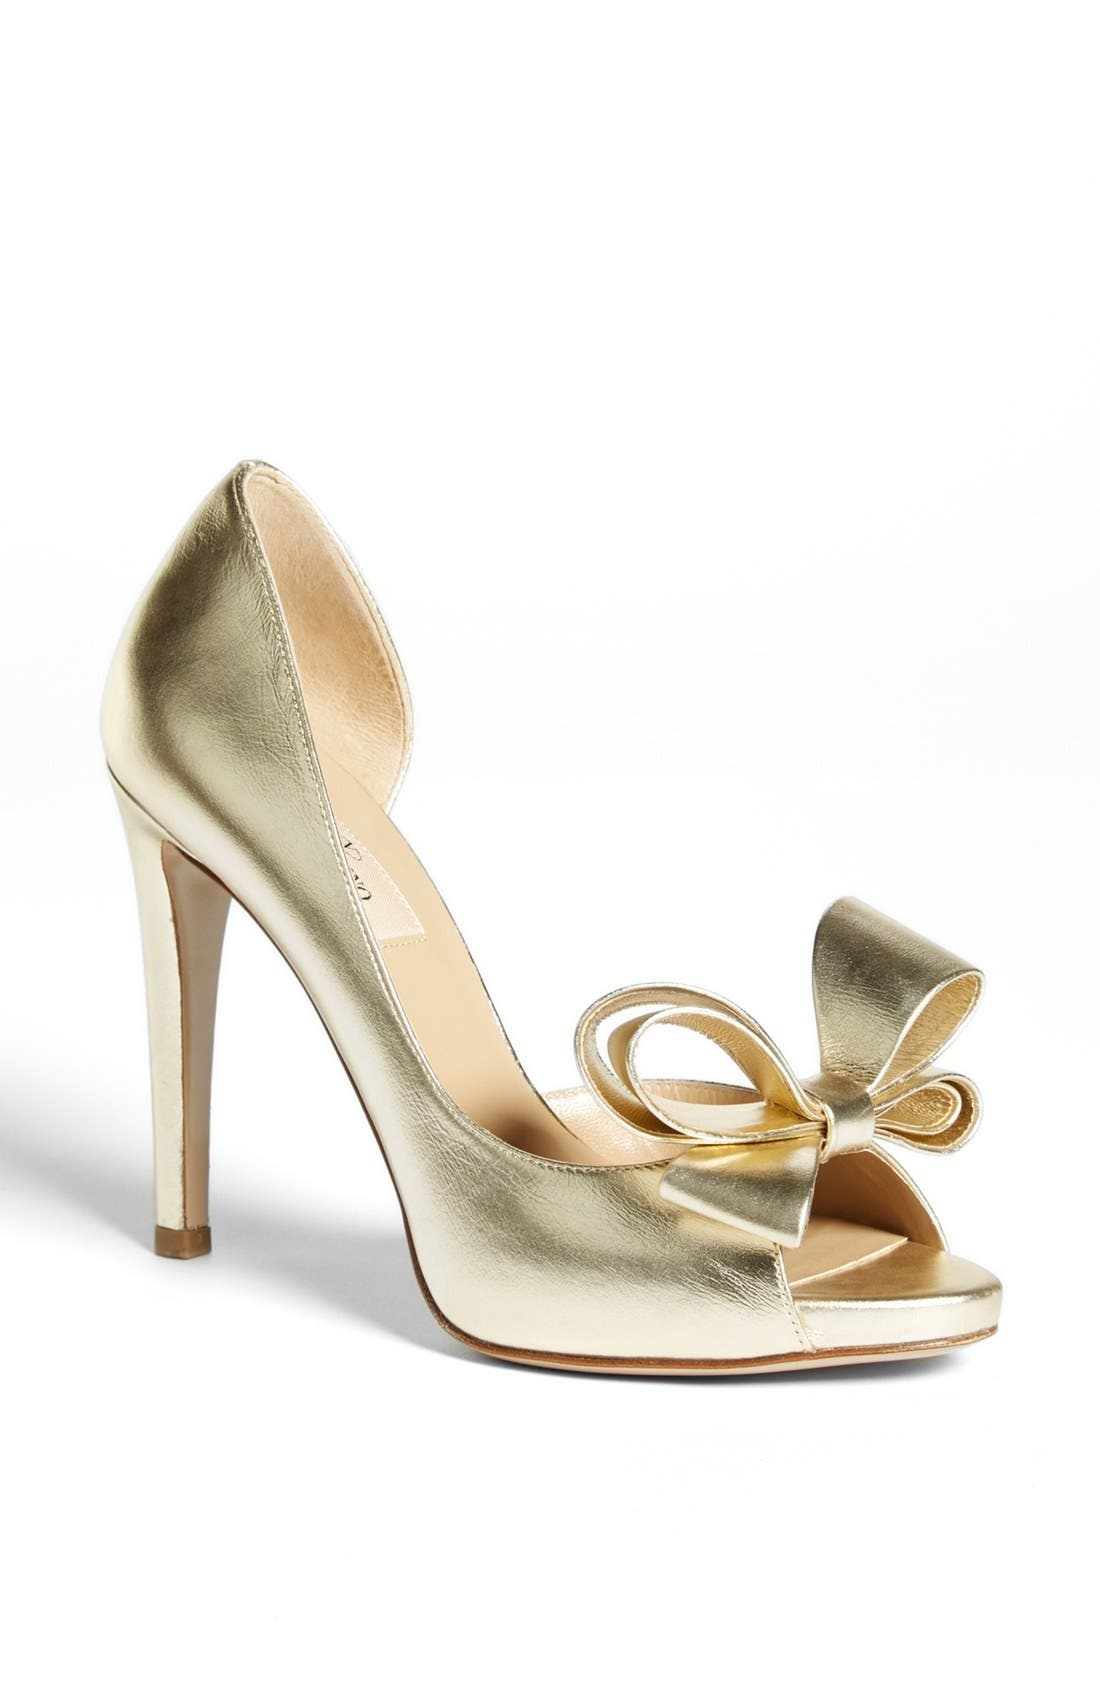 Main Image - Valentino 'Couture Bow' D'Orsay Pump (Women)